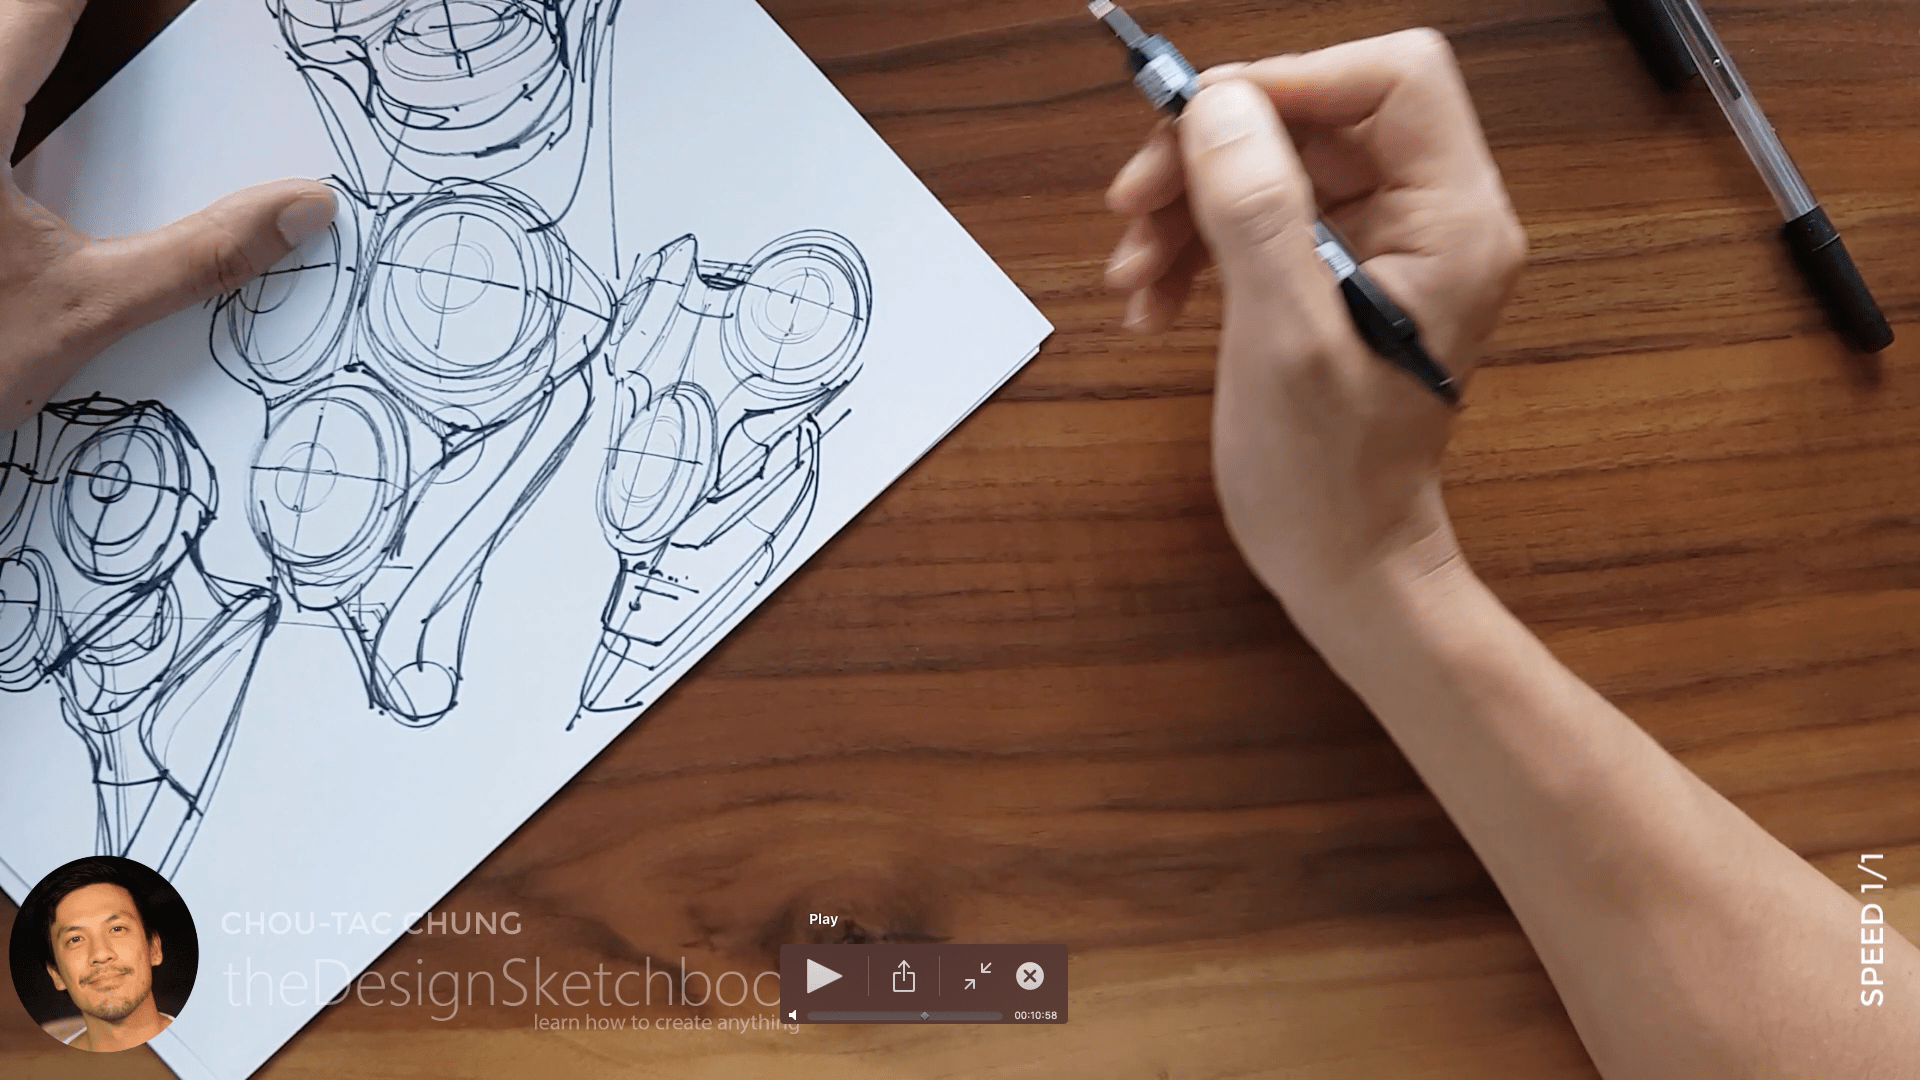 Sketching an electric shaver PHILIPS with the pilot twin marker pen - the design sketchbook - chung chou tac e9